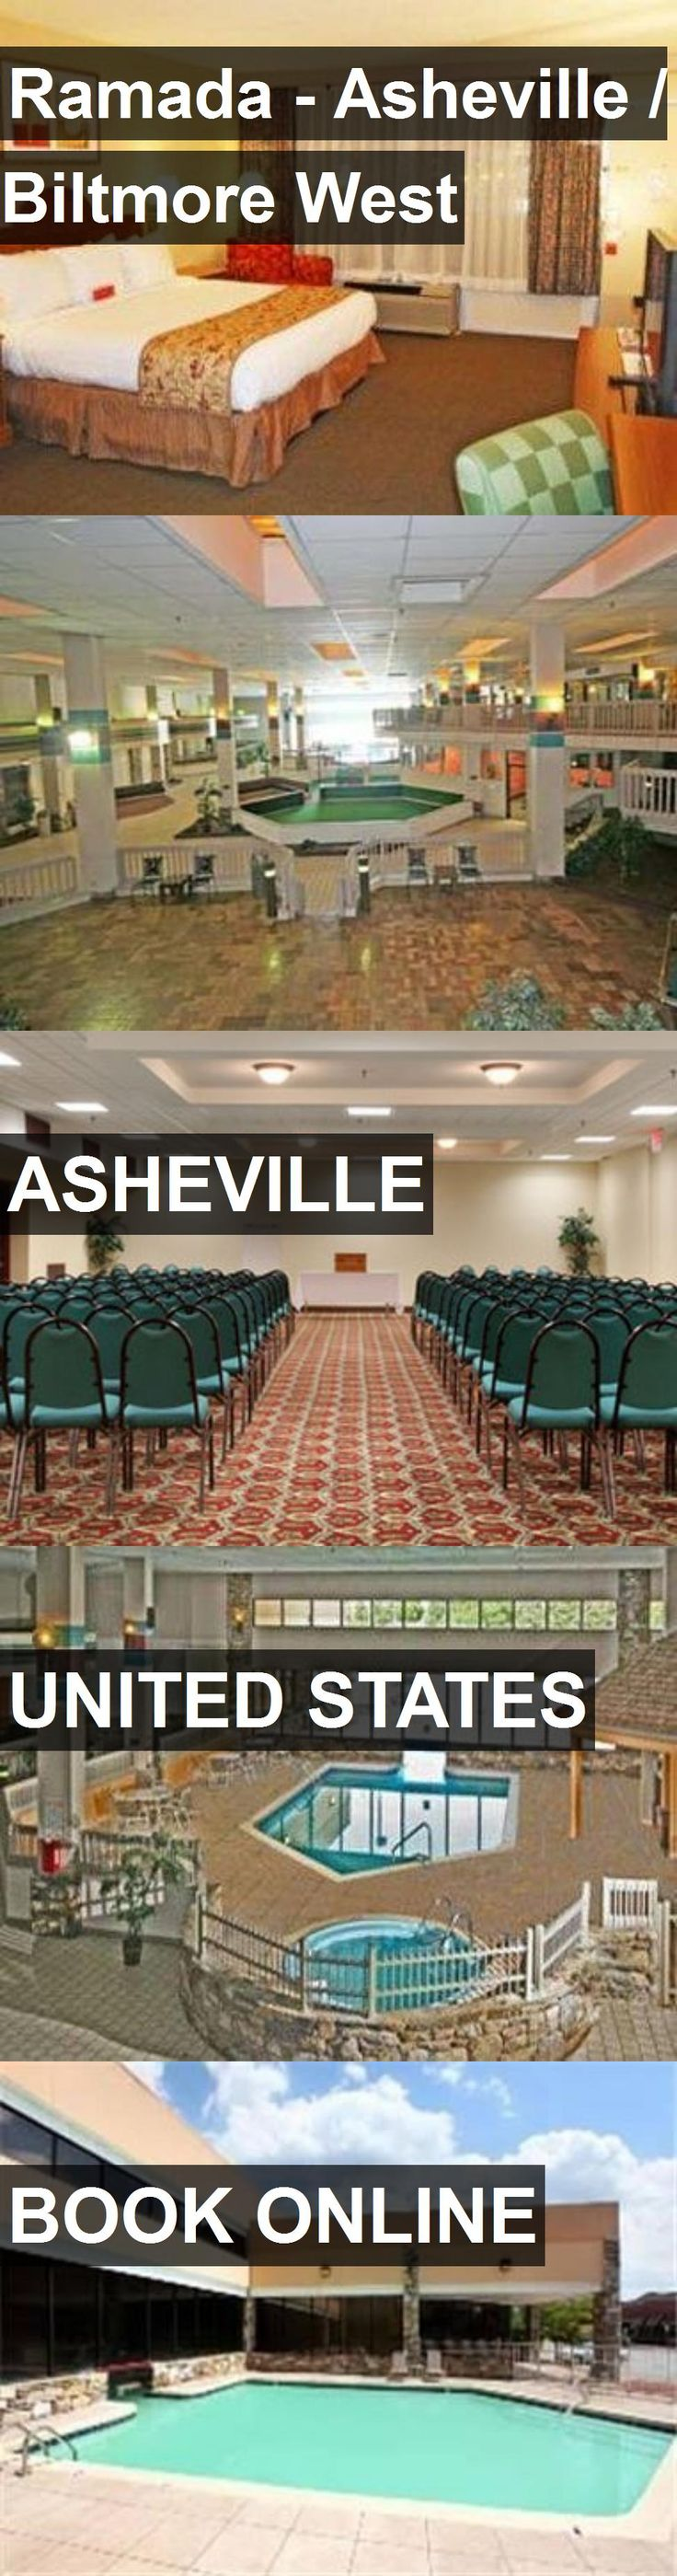 Hotel Ramada - Asheville / Biltmore West in Asheville, United States. For more information, photos, reviews and best prices please follow the link. #UnitedStates #Asheville #Ramada-Asheville/BiltmoreWest #hotel #travel #vacation